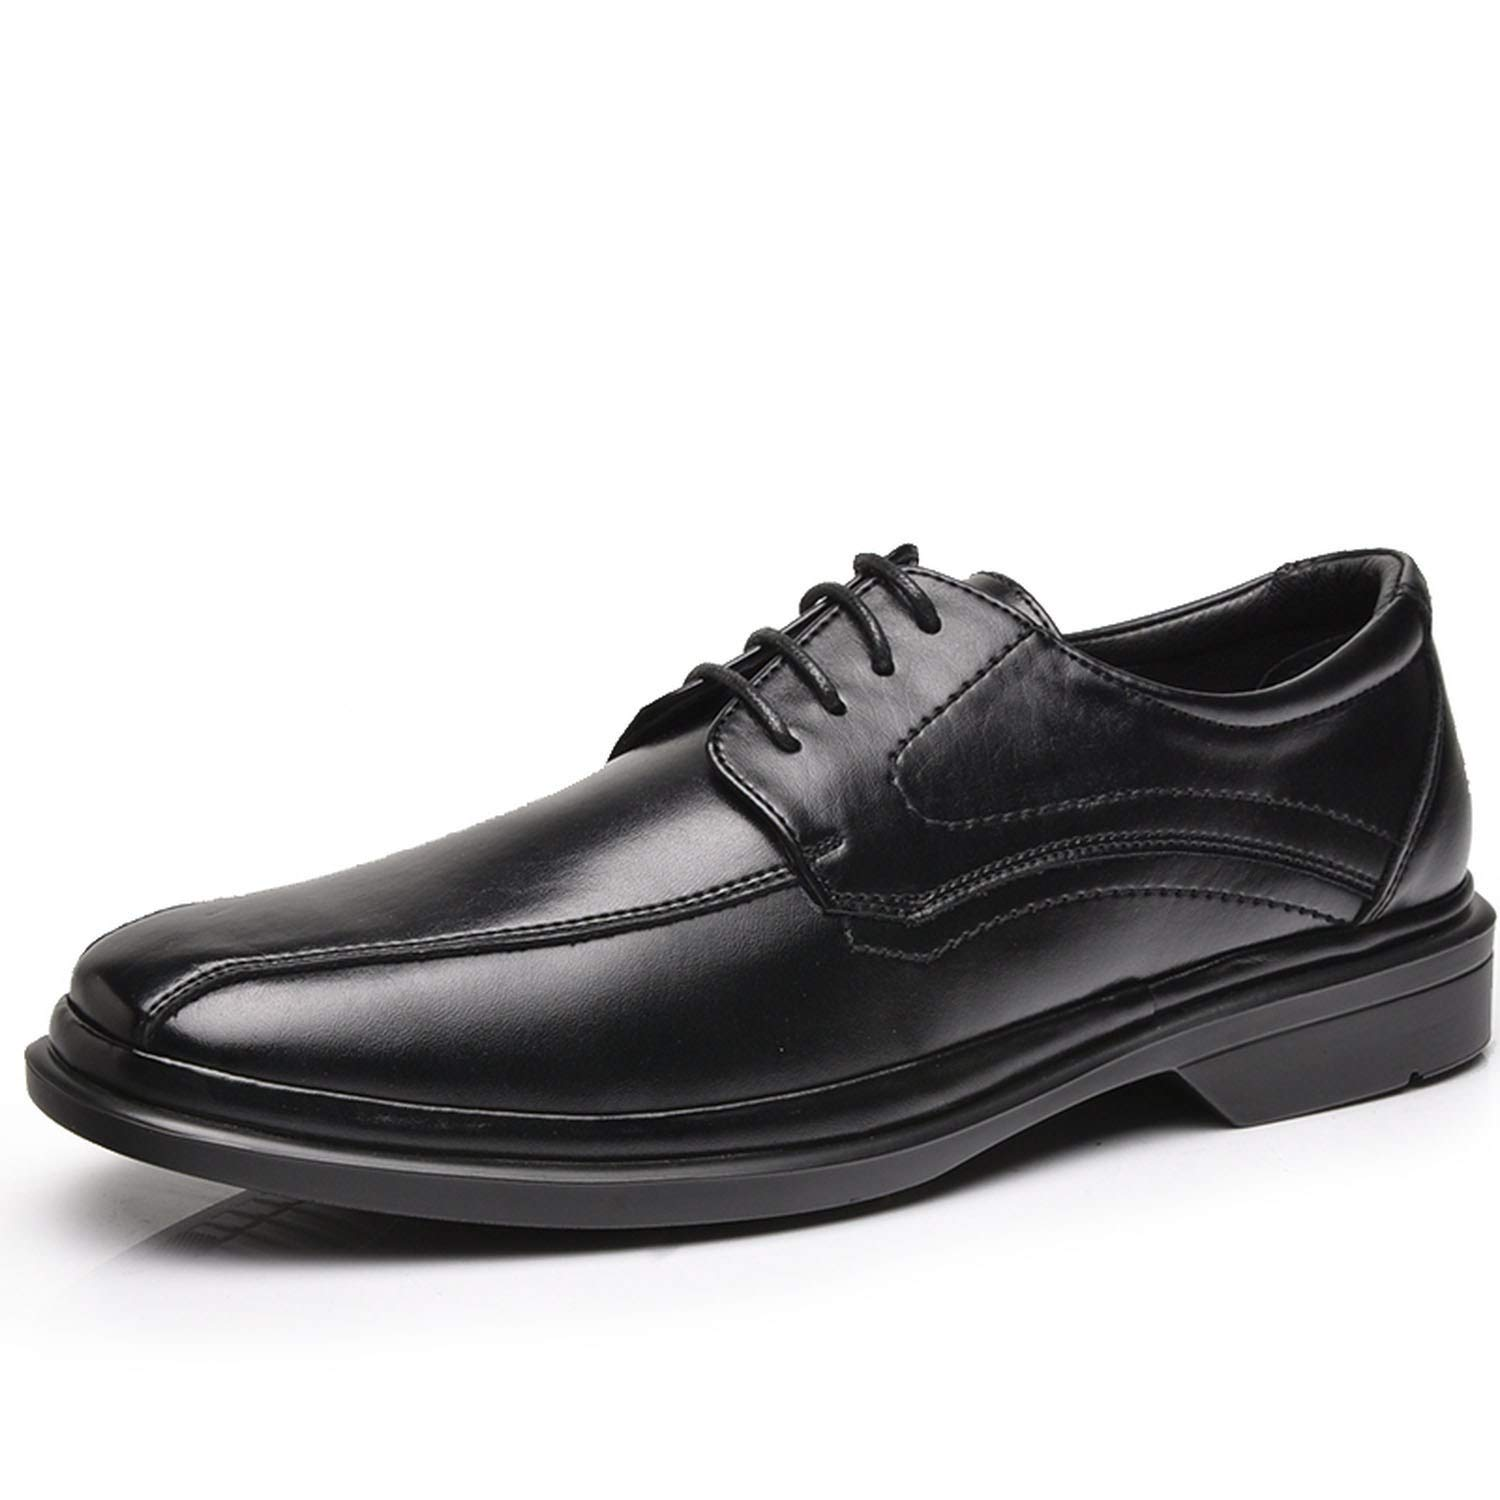 crazy-shop Sneakers Loafers Men Shoes Summer Dress Leather Shoes Breathable Daddy Shoes Casual Men Shoes,RUL001P8,11